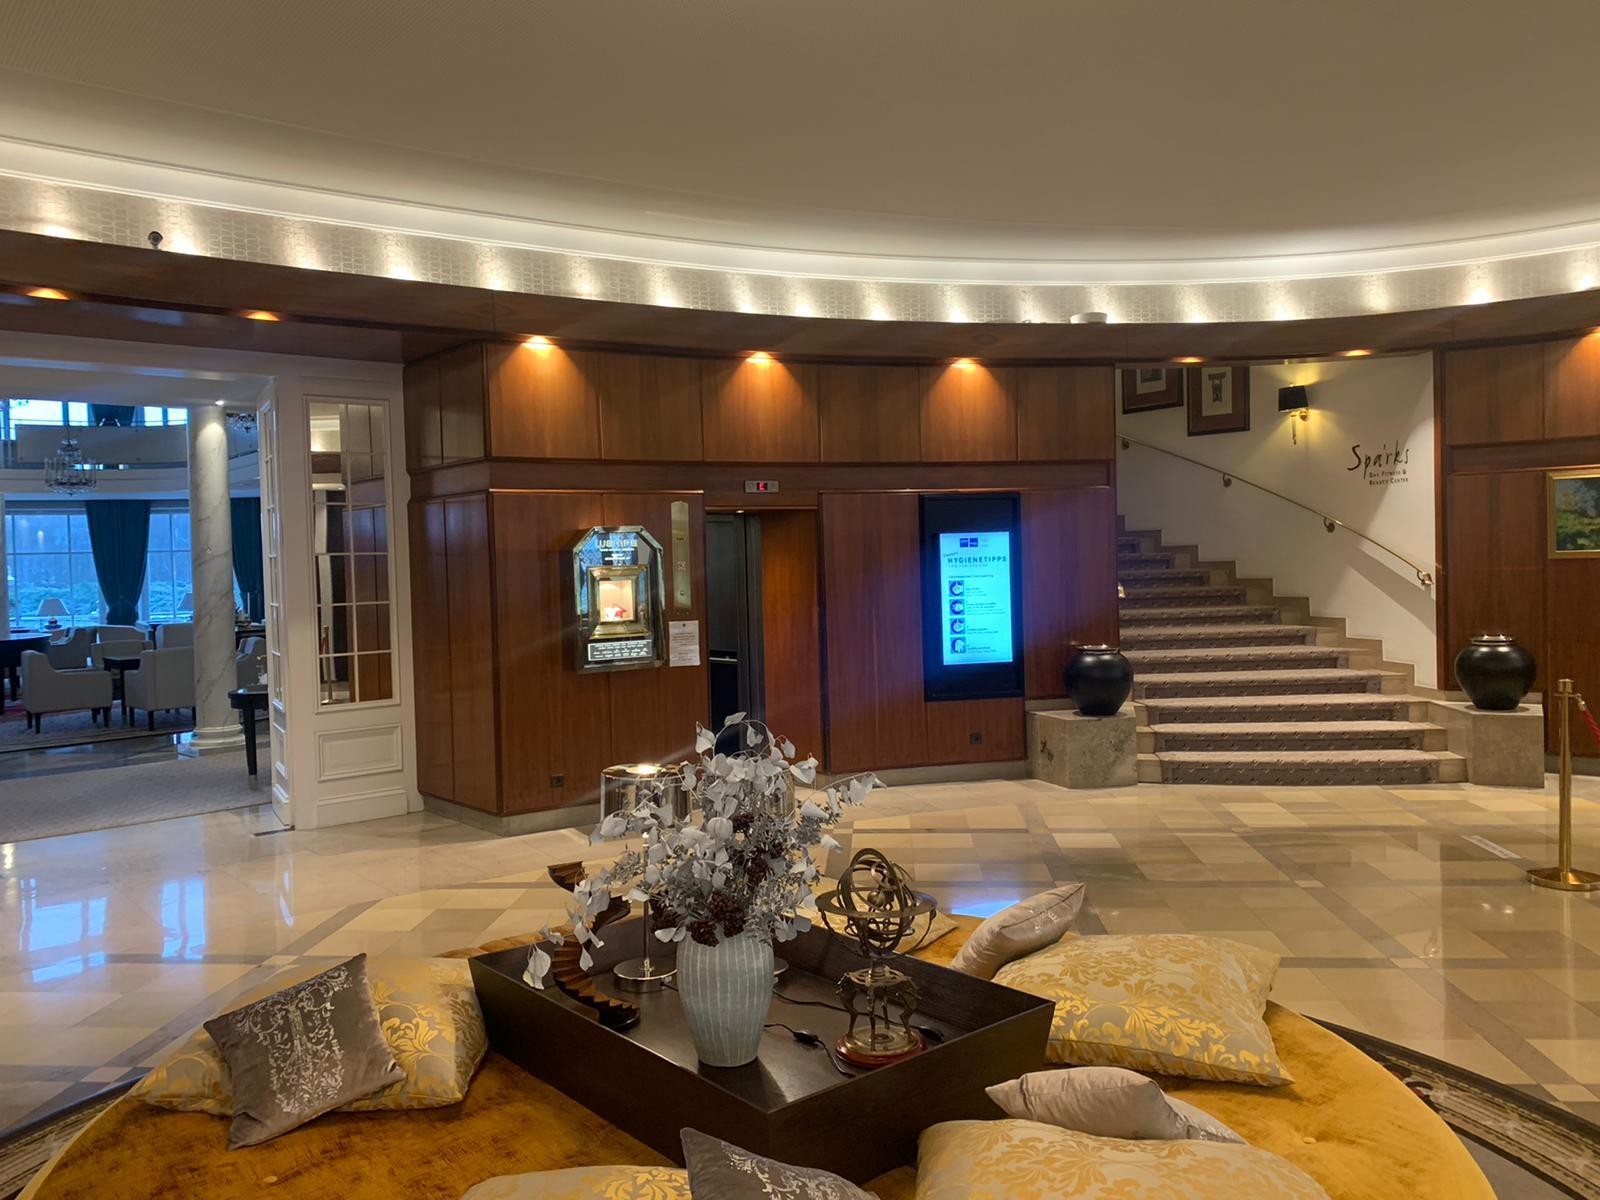 Installation of InfoPlay, our digital signage software in Dorint hotel in Bremen